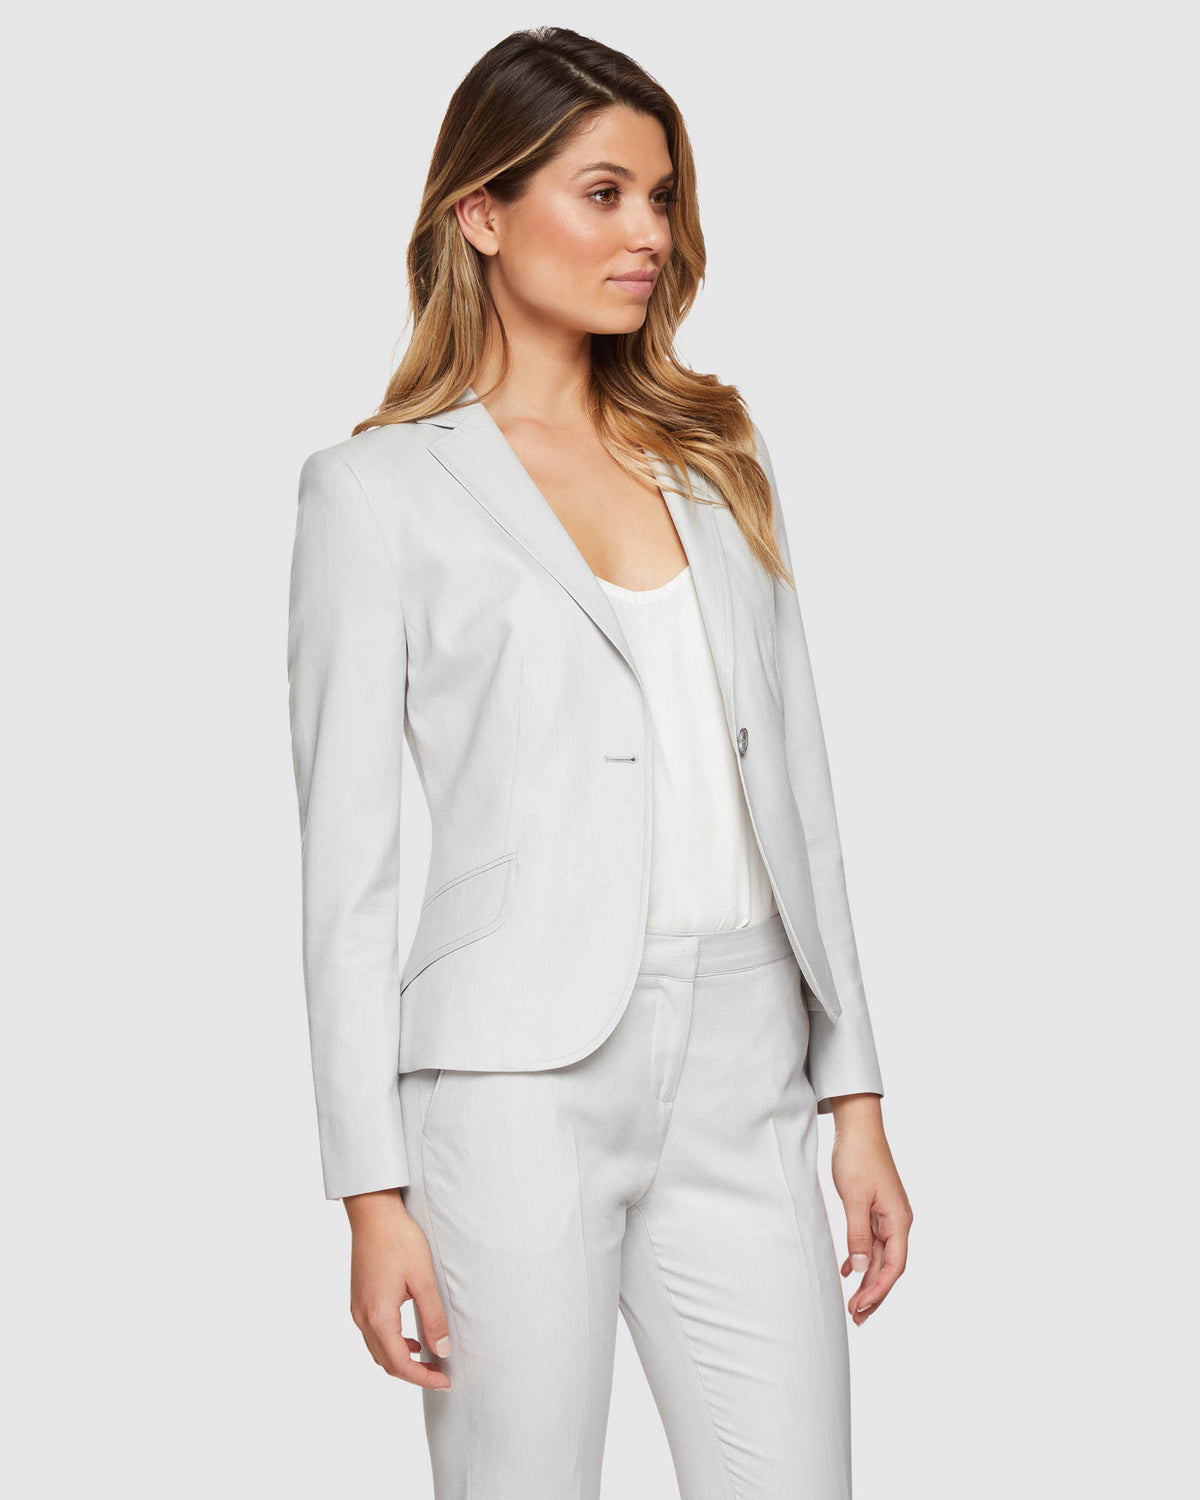 PIXIE STONE SUIT JACKET STONE